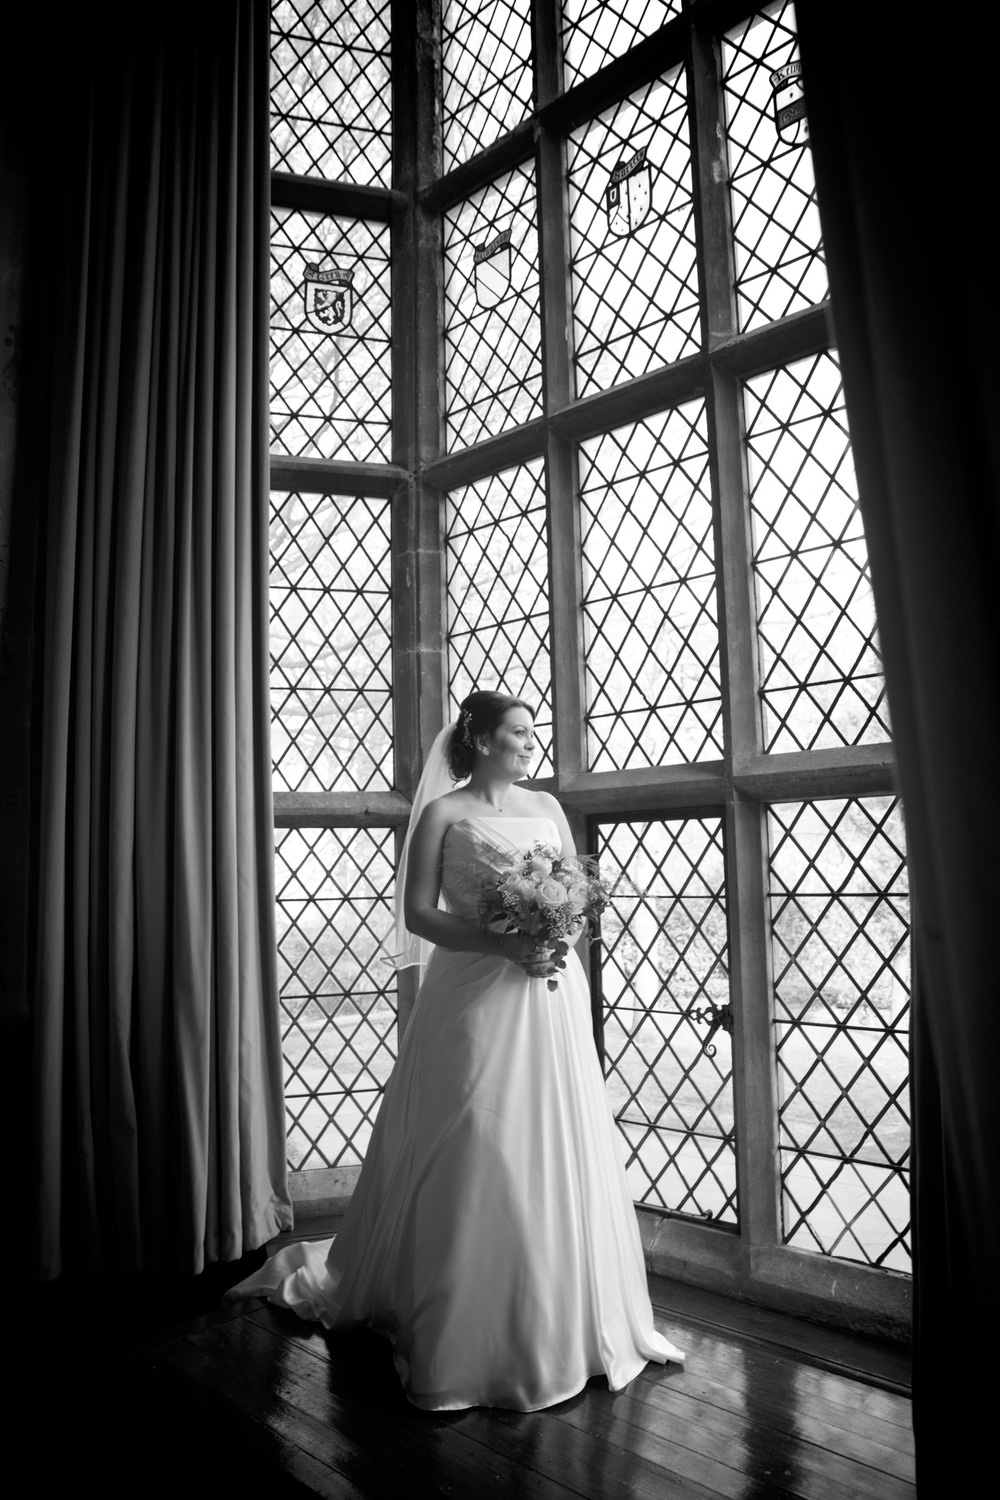 Lenses for Hire review - A shot from the wedding again with the Canon 24-70L 2.8ii USM